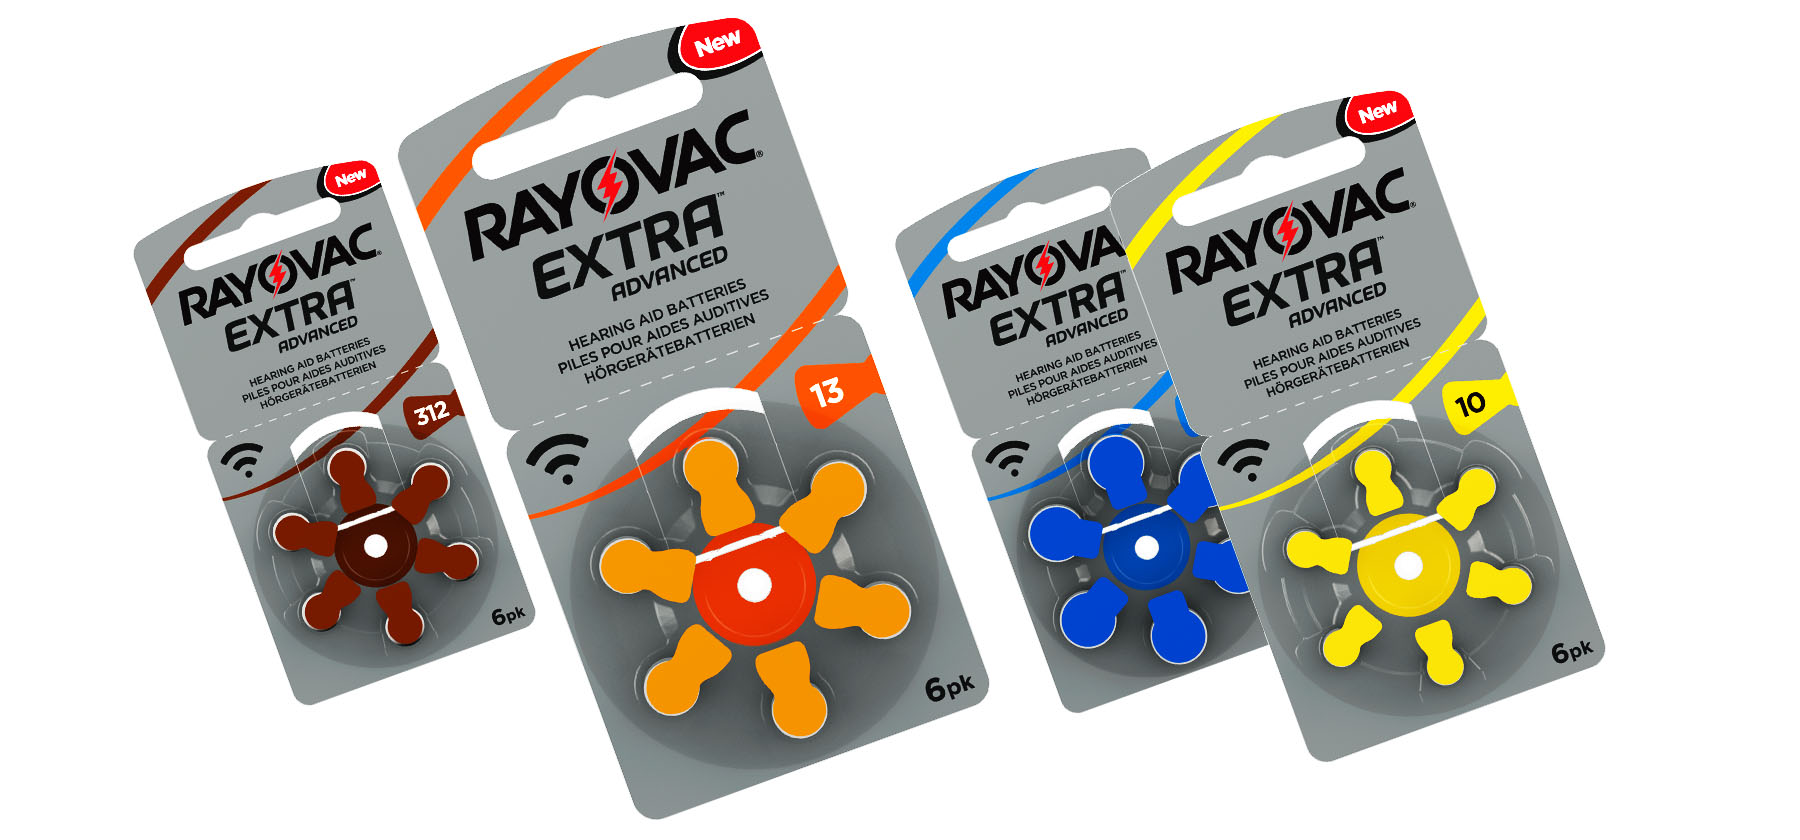 Rayovac EXTRA Advanced